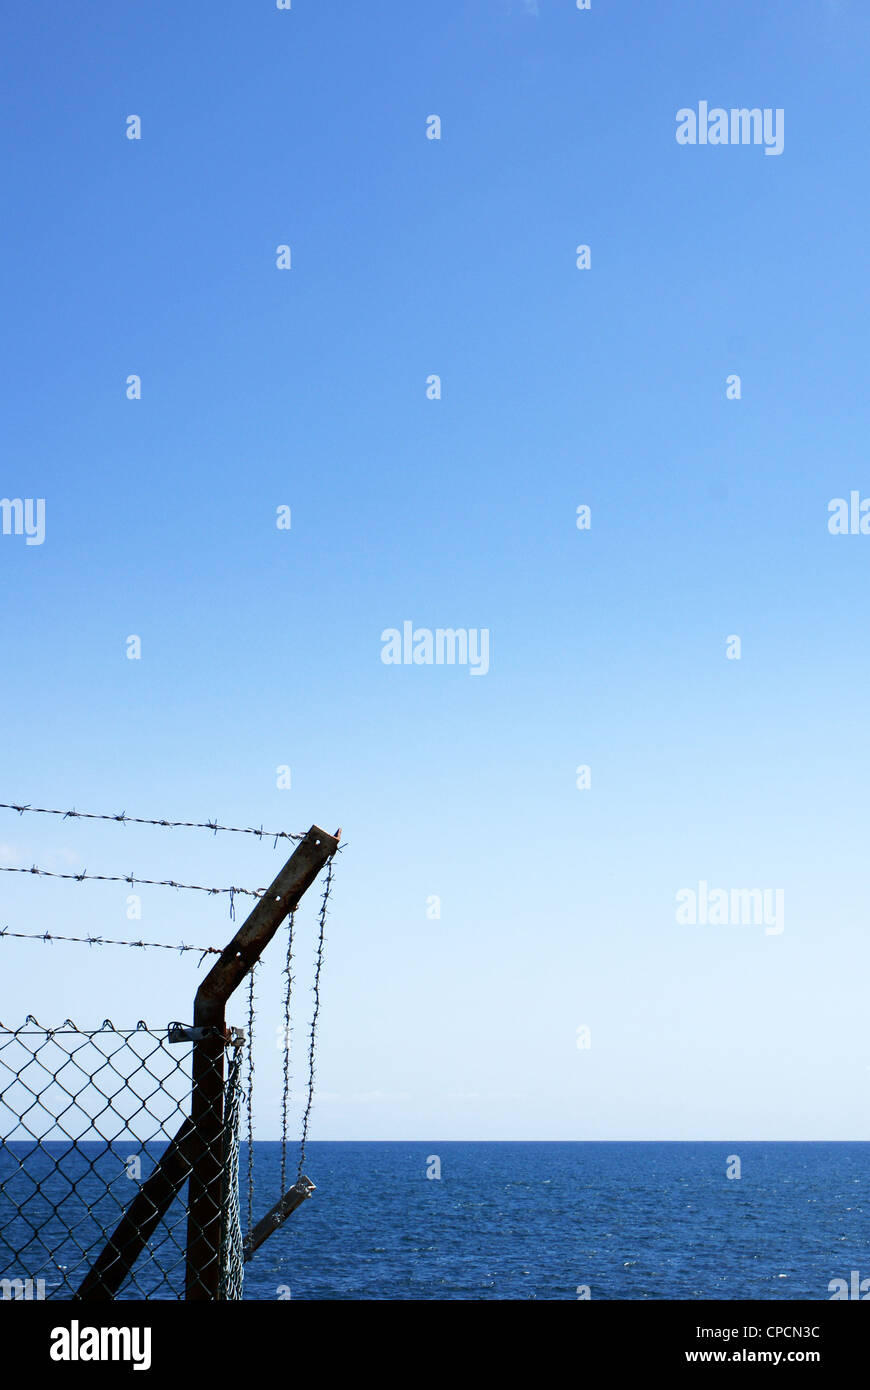 Barb wired fence by the sea - Stock Image